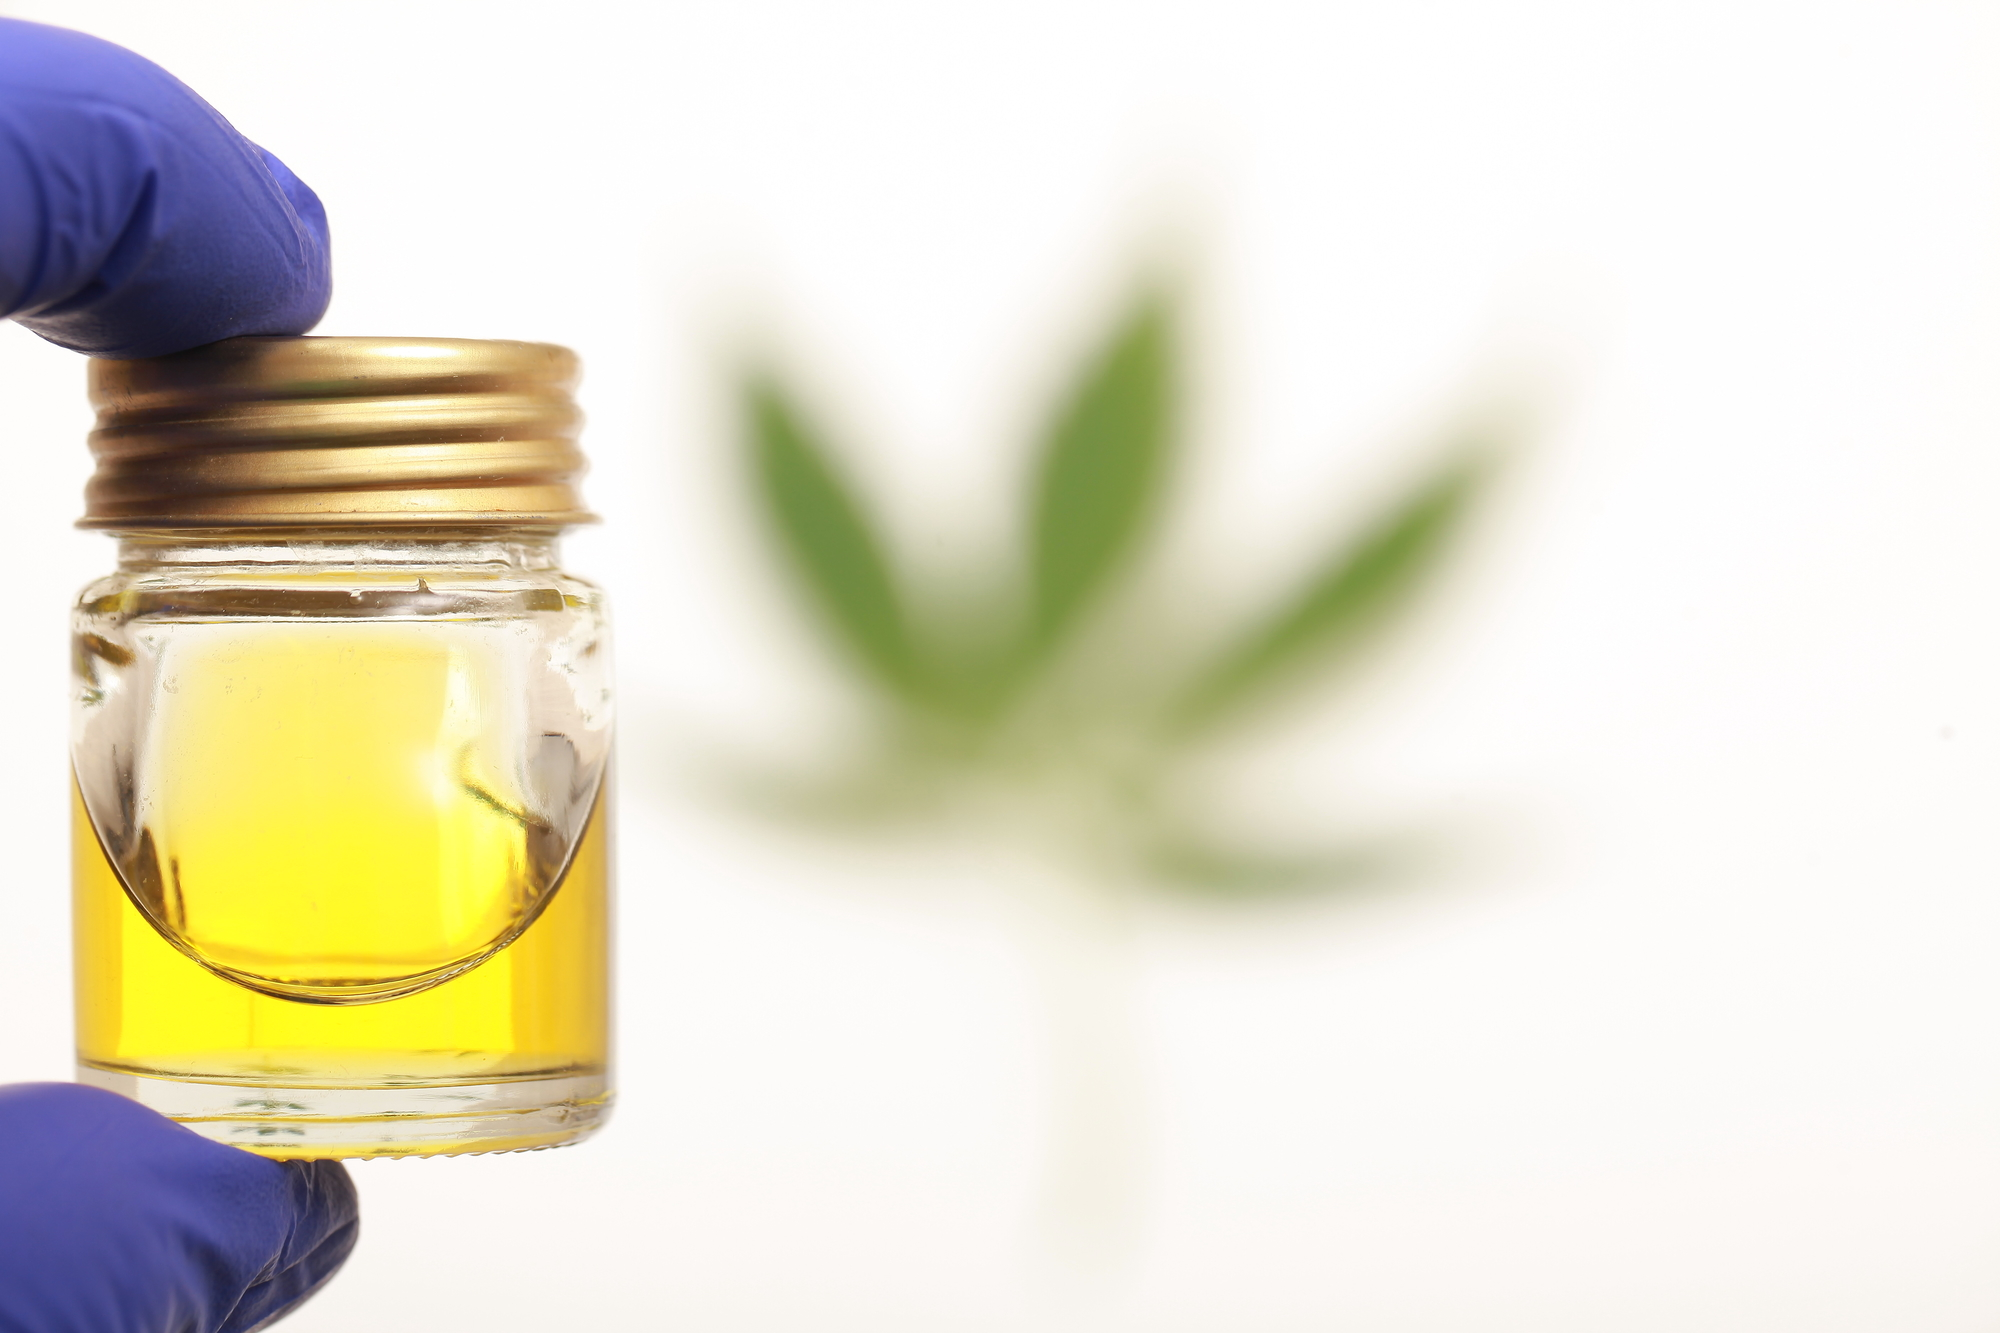 The role of the pandemic in the rise of CBD oil